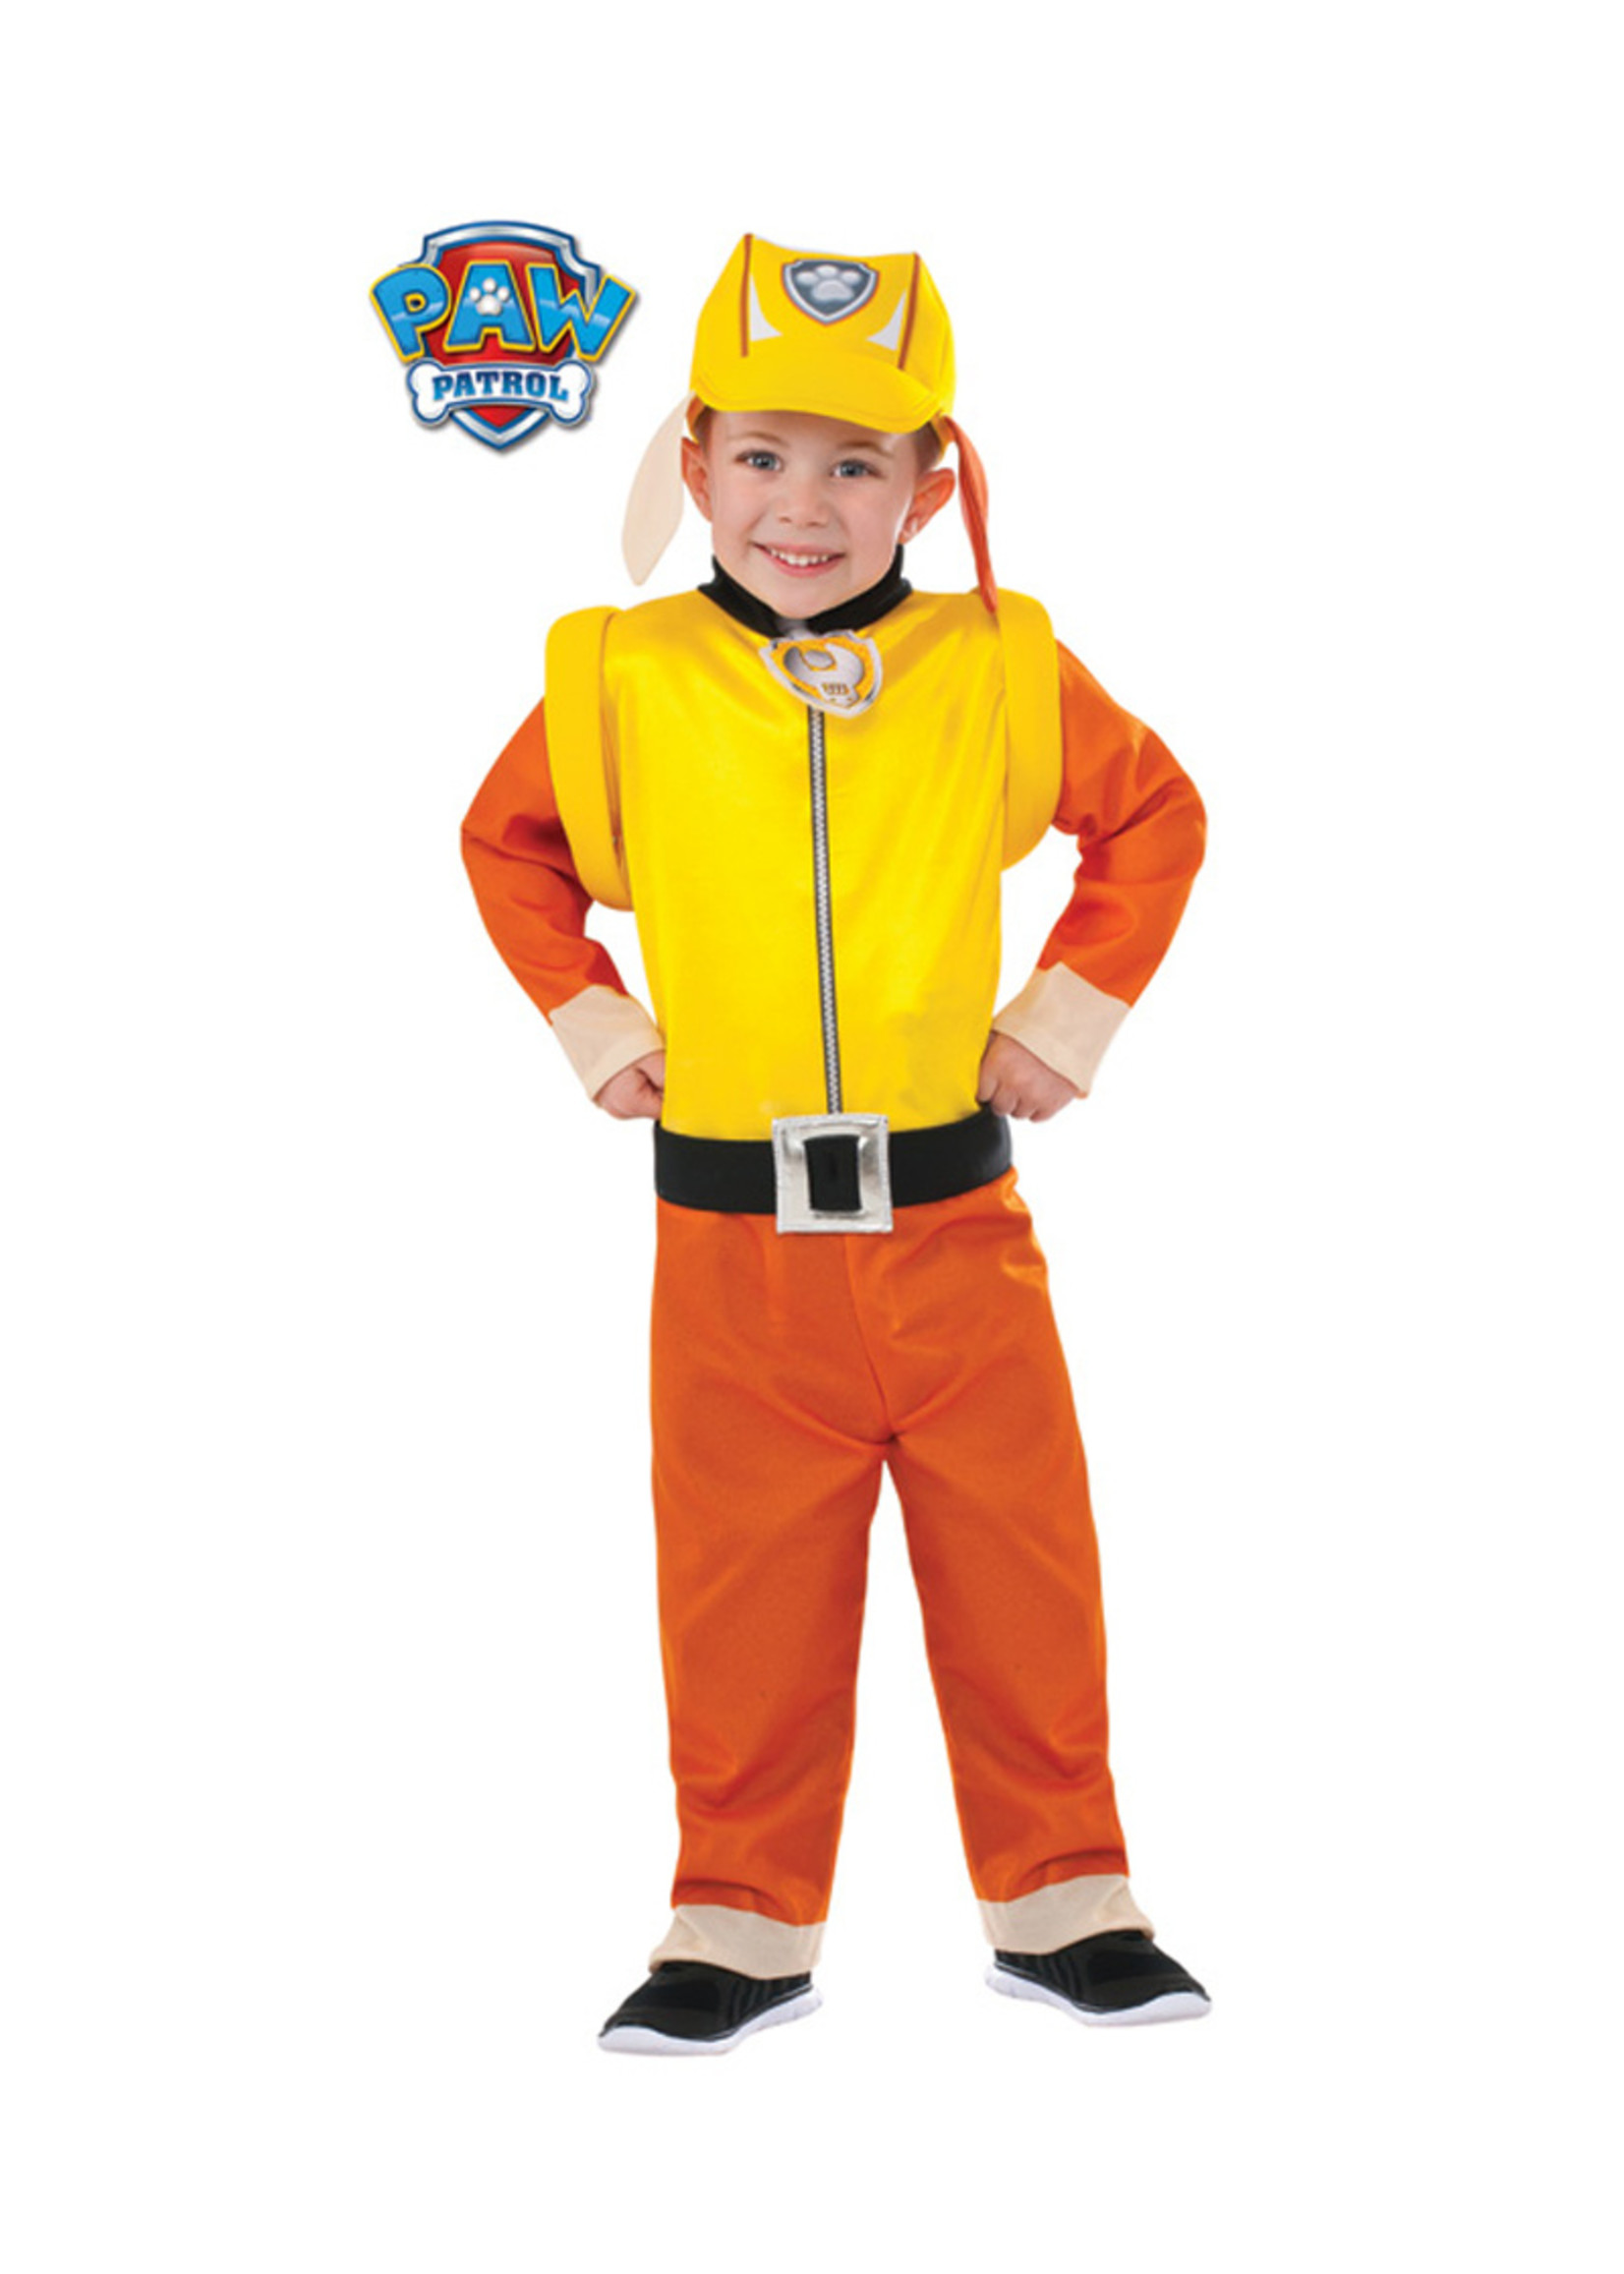 Rubble - Paw Patrol Costume - Toddler